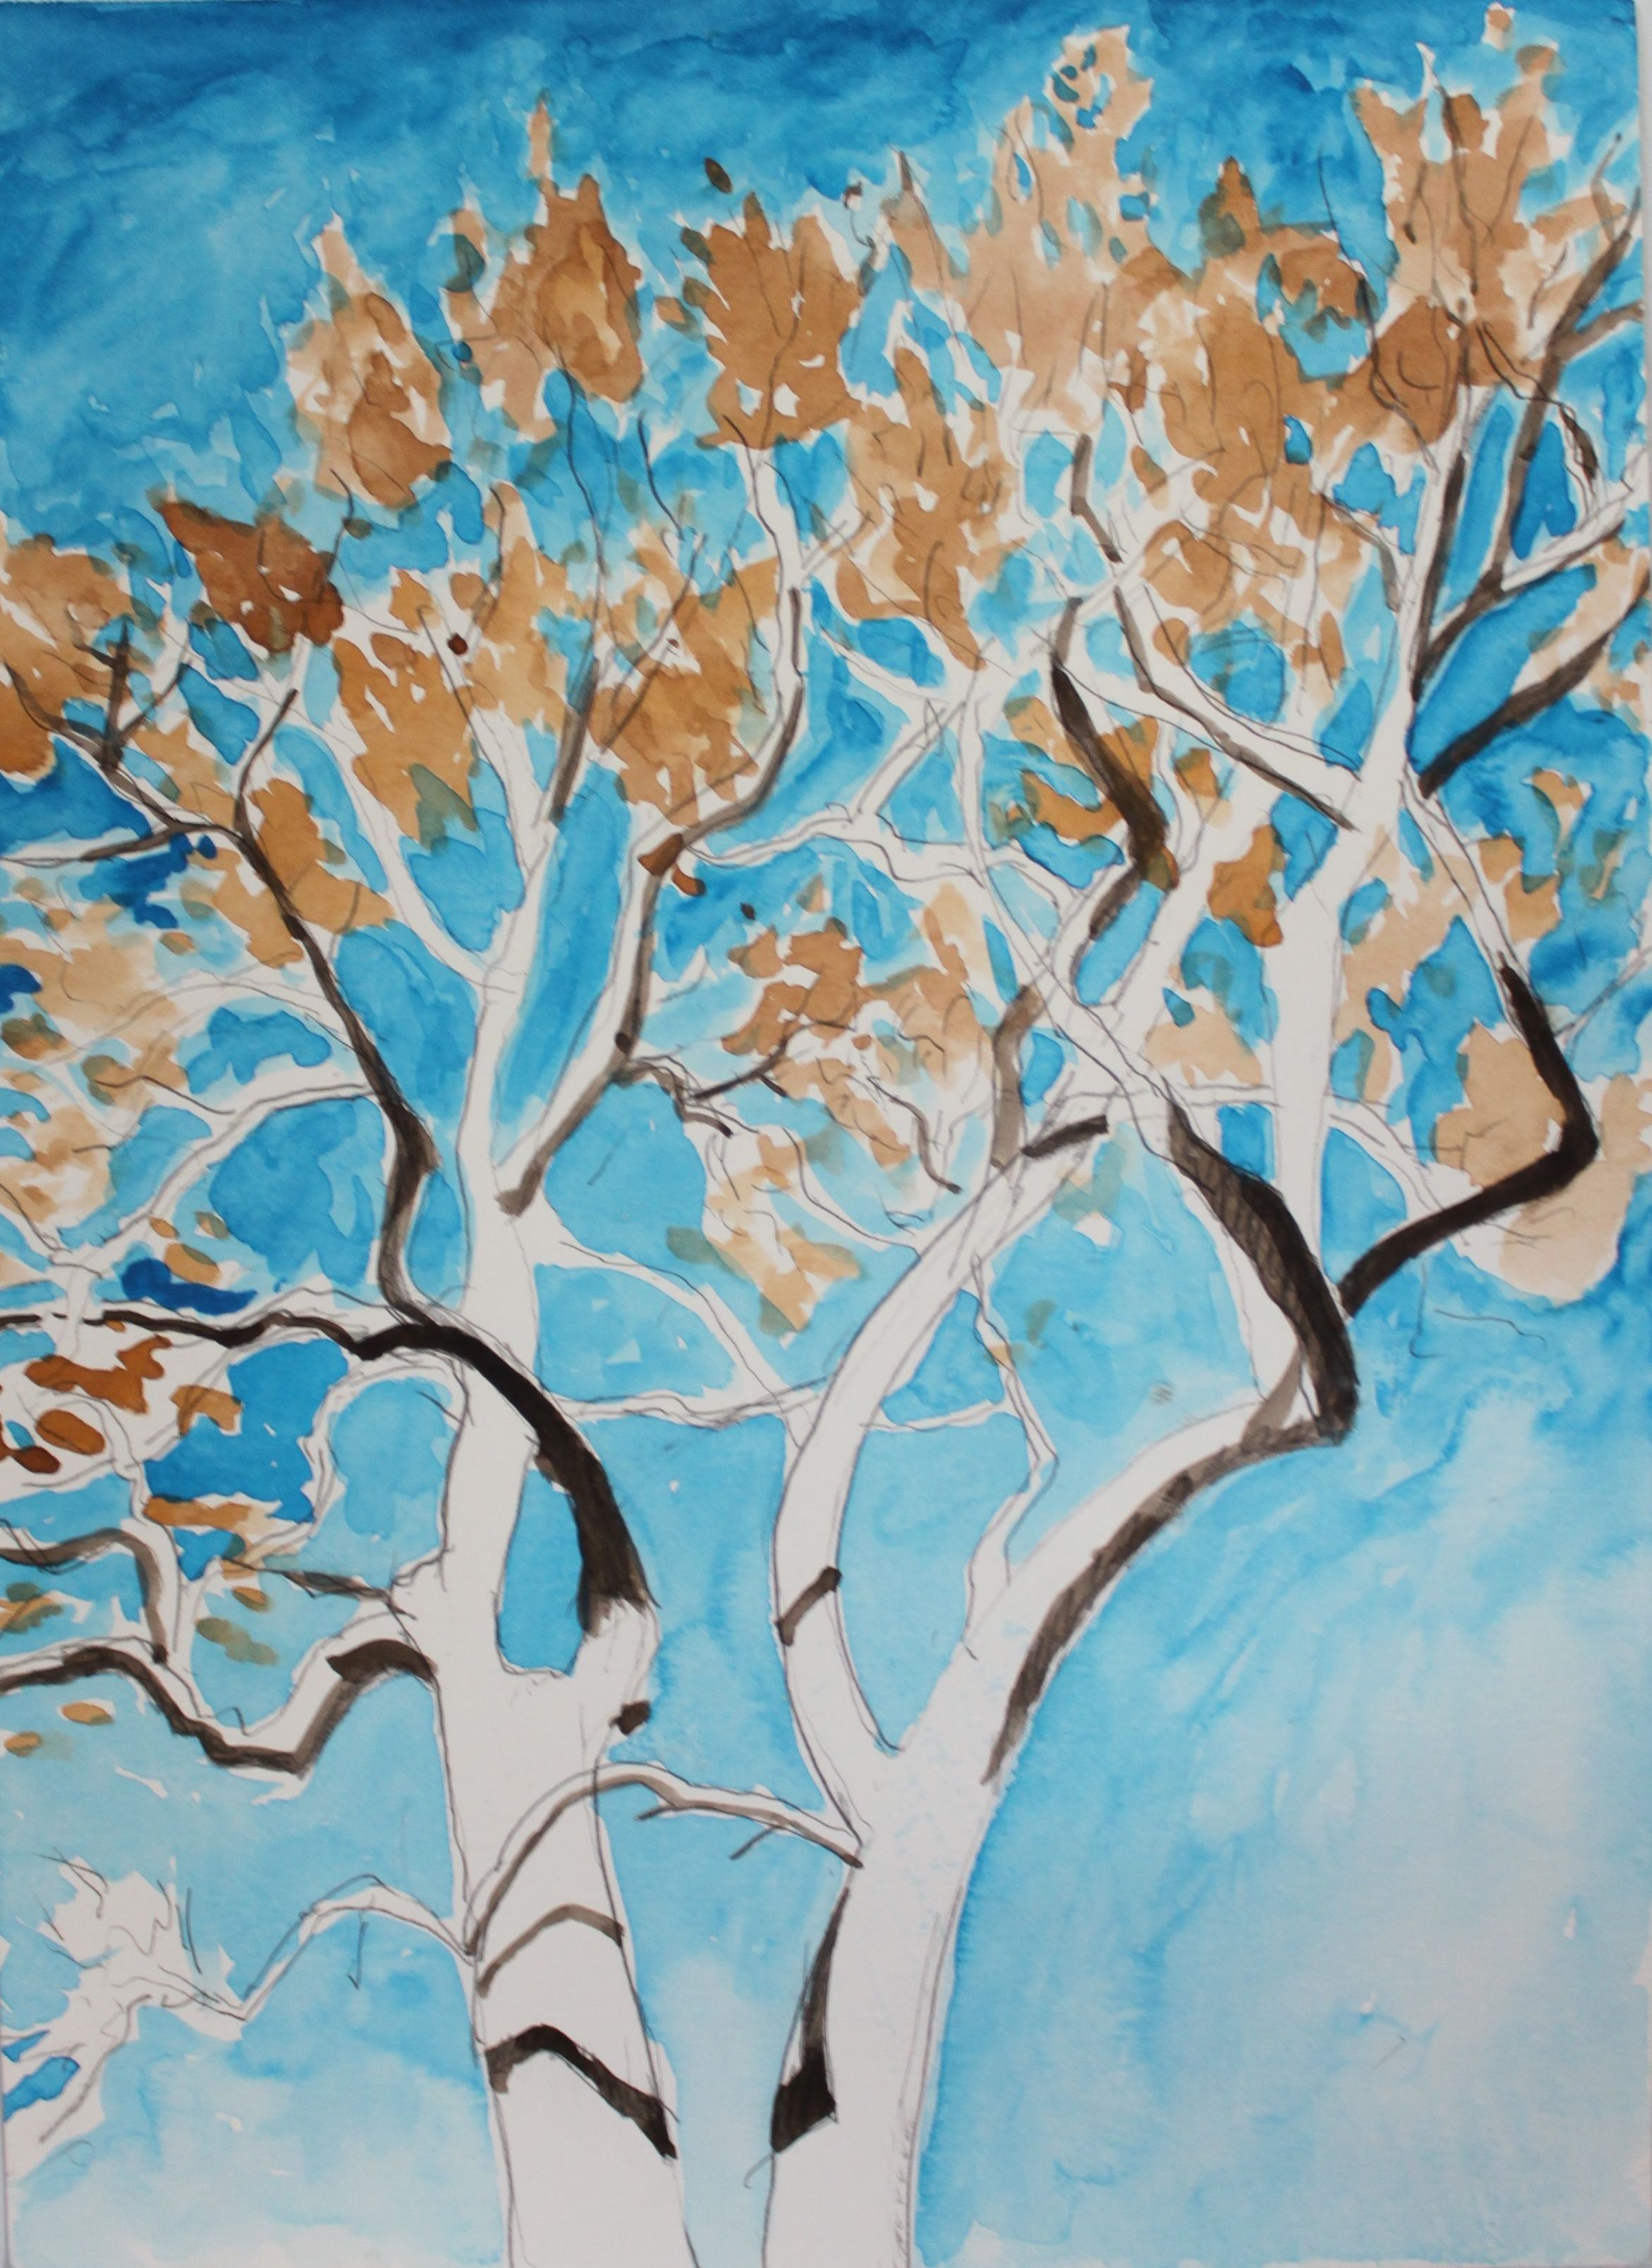 Sycamore Tree, 2016, watercolor, 14 x 9 in.